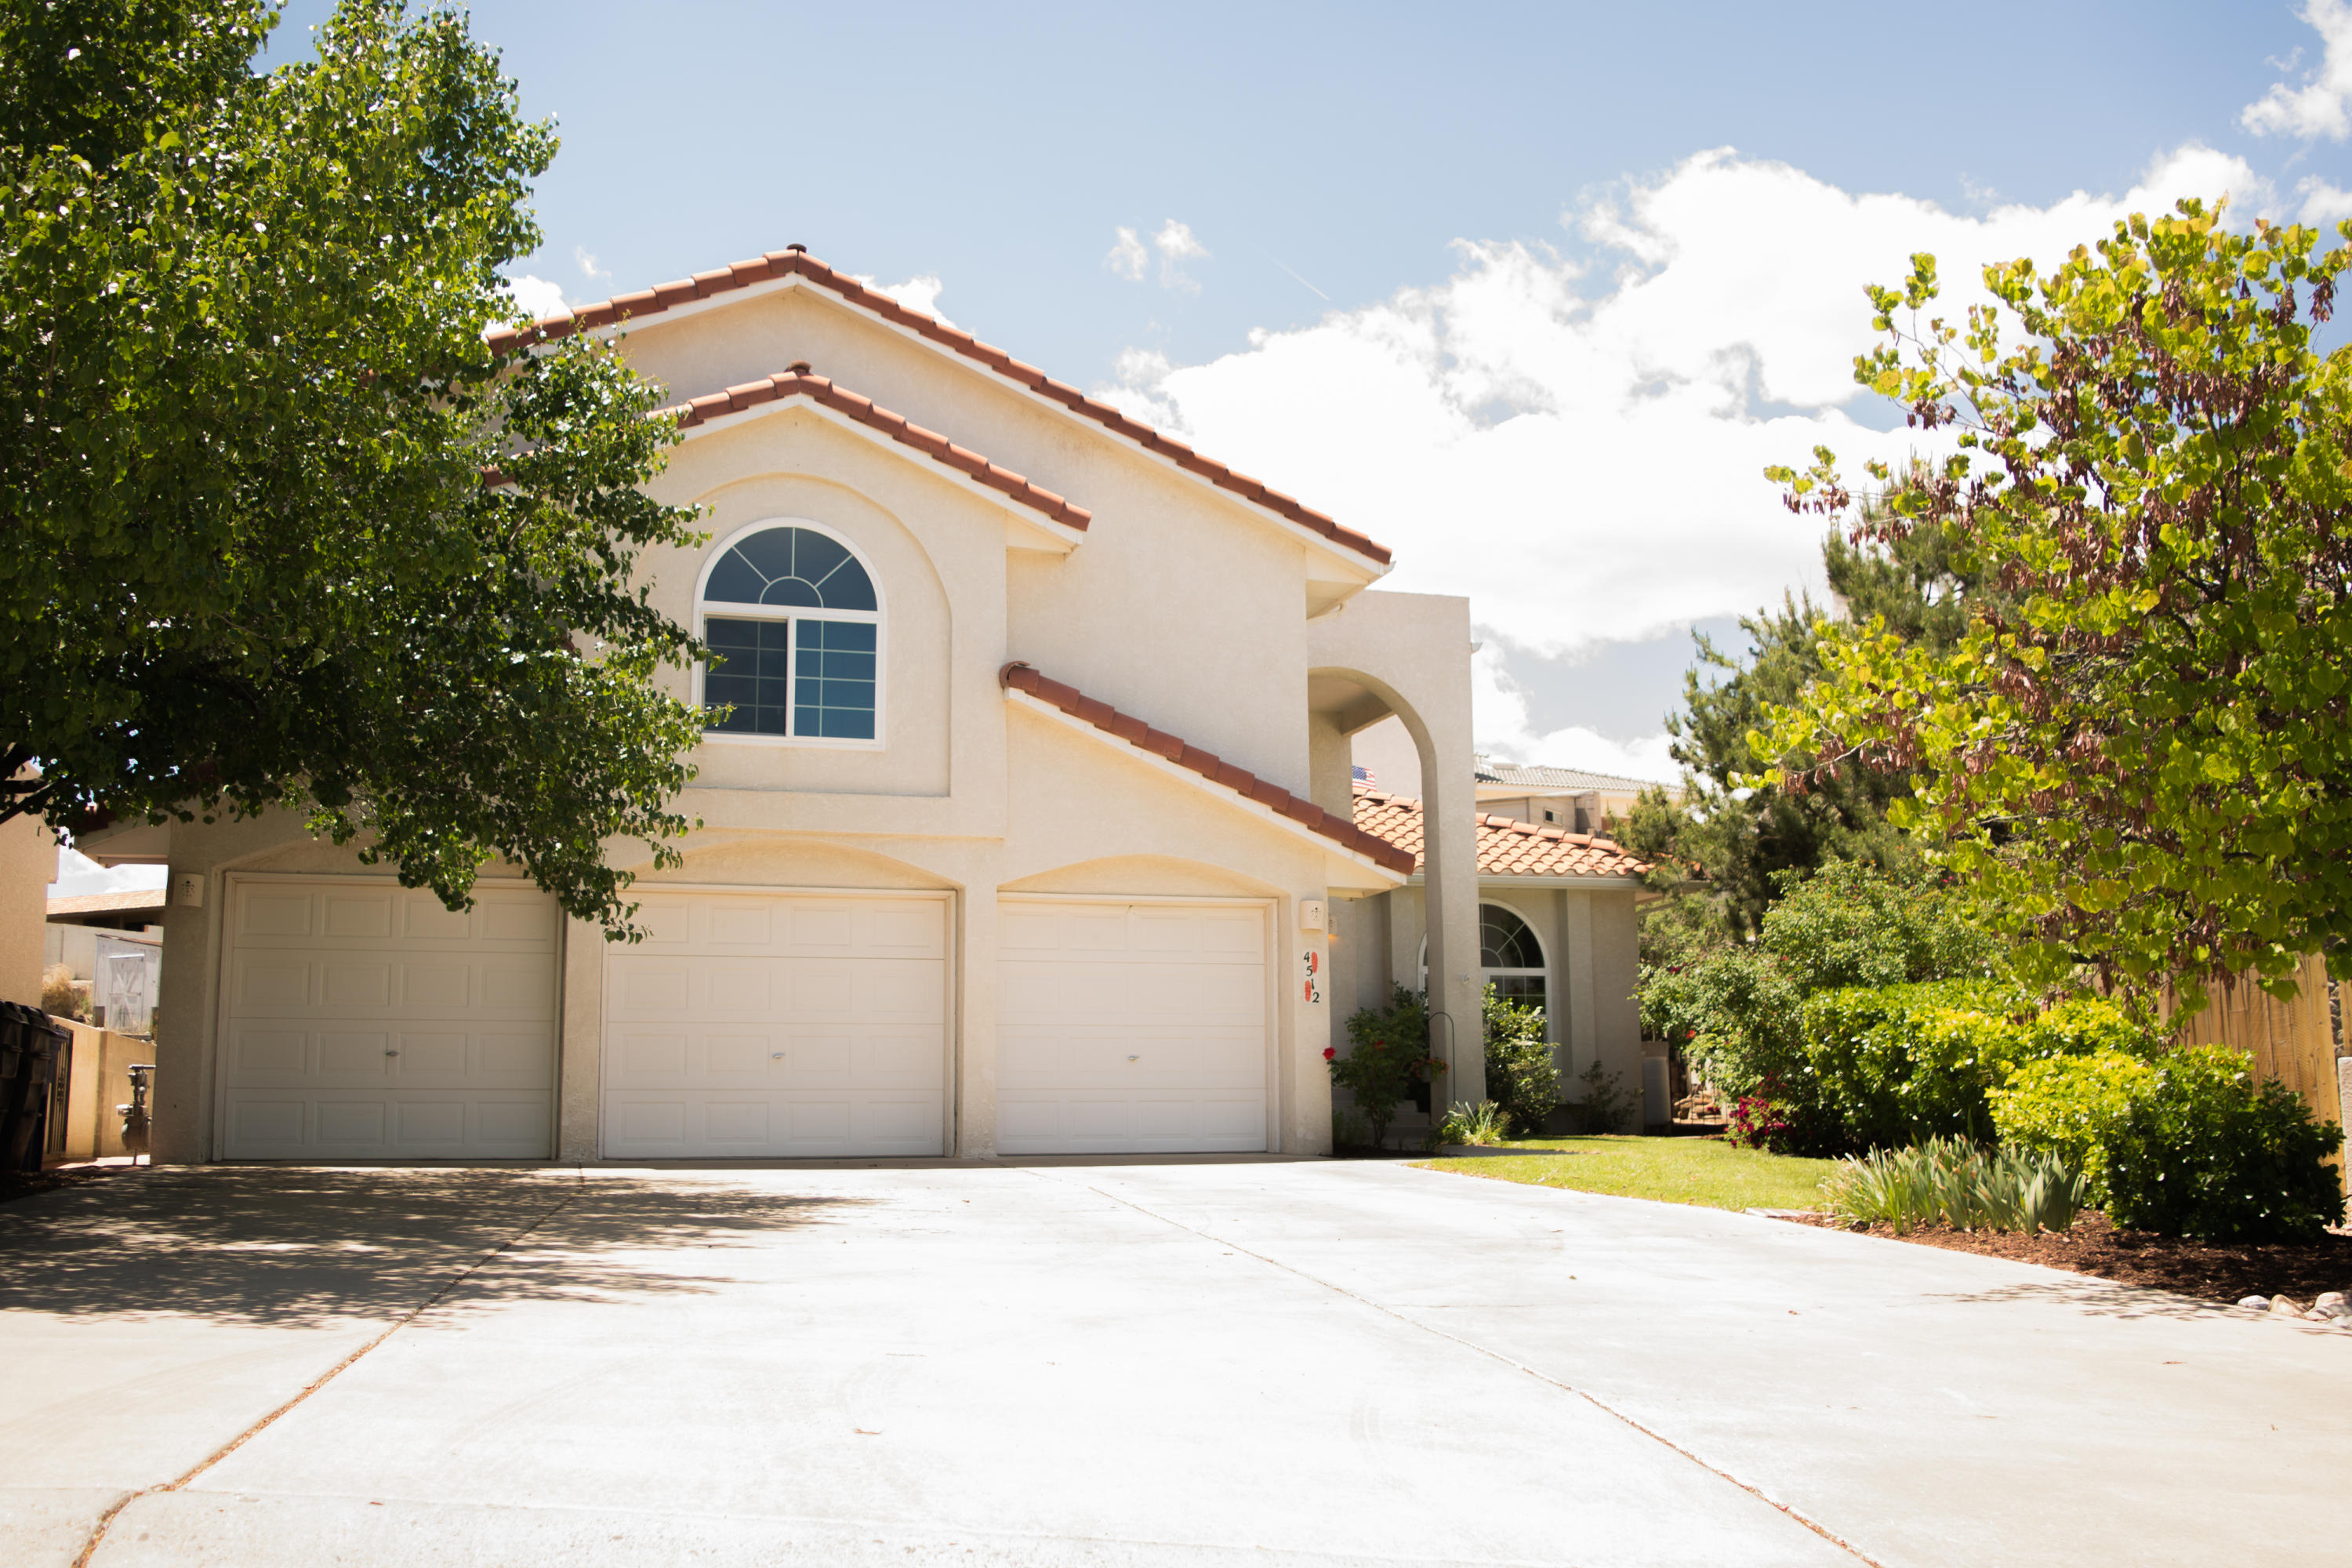 Beautifully Updated Taylor Ranch Gem! Quiet cul de sac. Stunning Paradise of Flora & Fauna - Large quarter acre lot. Bright, open, soaring ceilings, newer kitchen, windows, doors, HVAC, roof underlayment & paint! 6 bedrooms, 3 Car Garage + 6 car parking. One of a kind irrigated yard overflowing with established shade & fruit trees, Lady Bank's rose vines adorn trellis patio, terraced beds, walkways, flowers & greenhouse! Major kitchen renovation doubled size and yielded a multi-chef's work space, Sollid Brand Cabinets, induction downdraft 5 burner cooktop, inset counter depth frig, two sinks, Jenn-Air ovens. Stunning mountain views from Owner's suite. Large bath, dbl sinks, separate jetted tub/shower. Great location near Montano Plaza & Coors! 5 min to I-40, 20 to downtown.